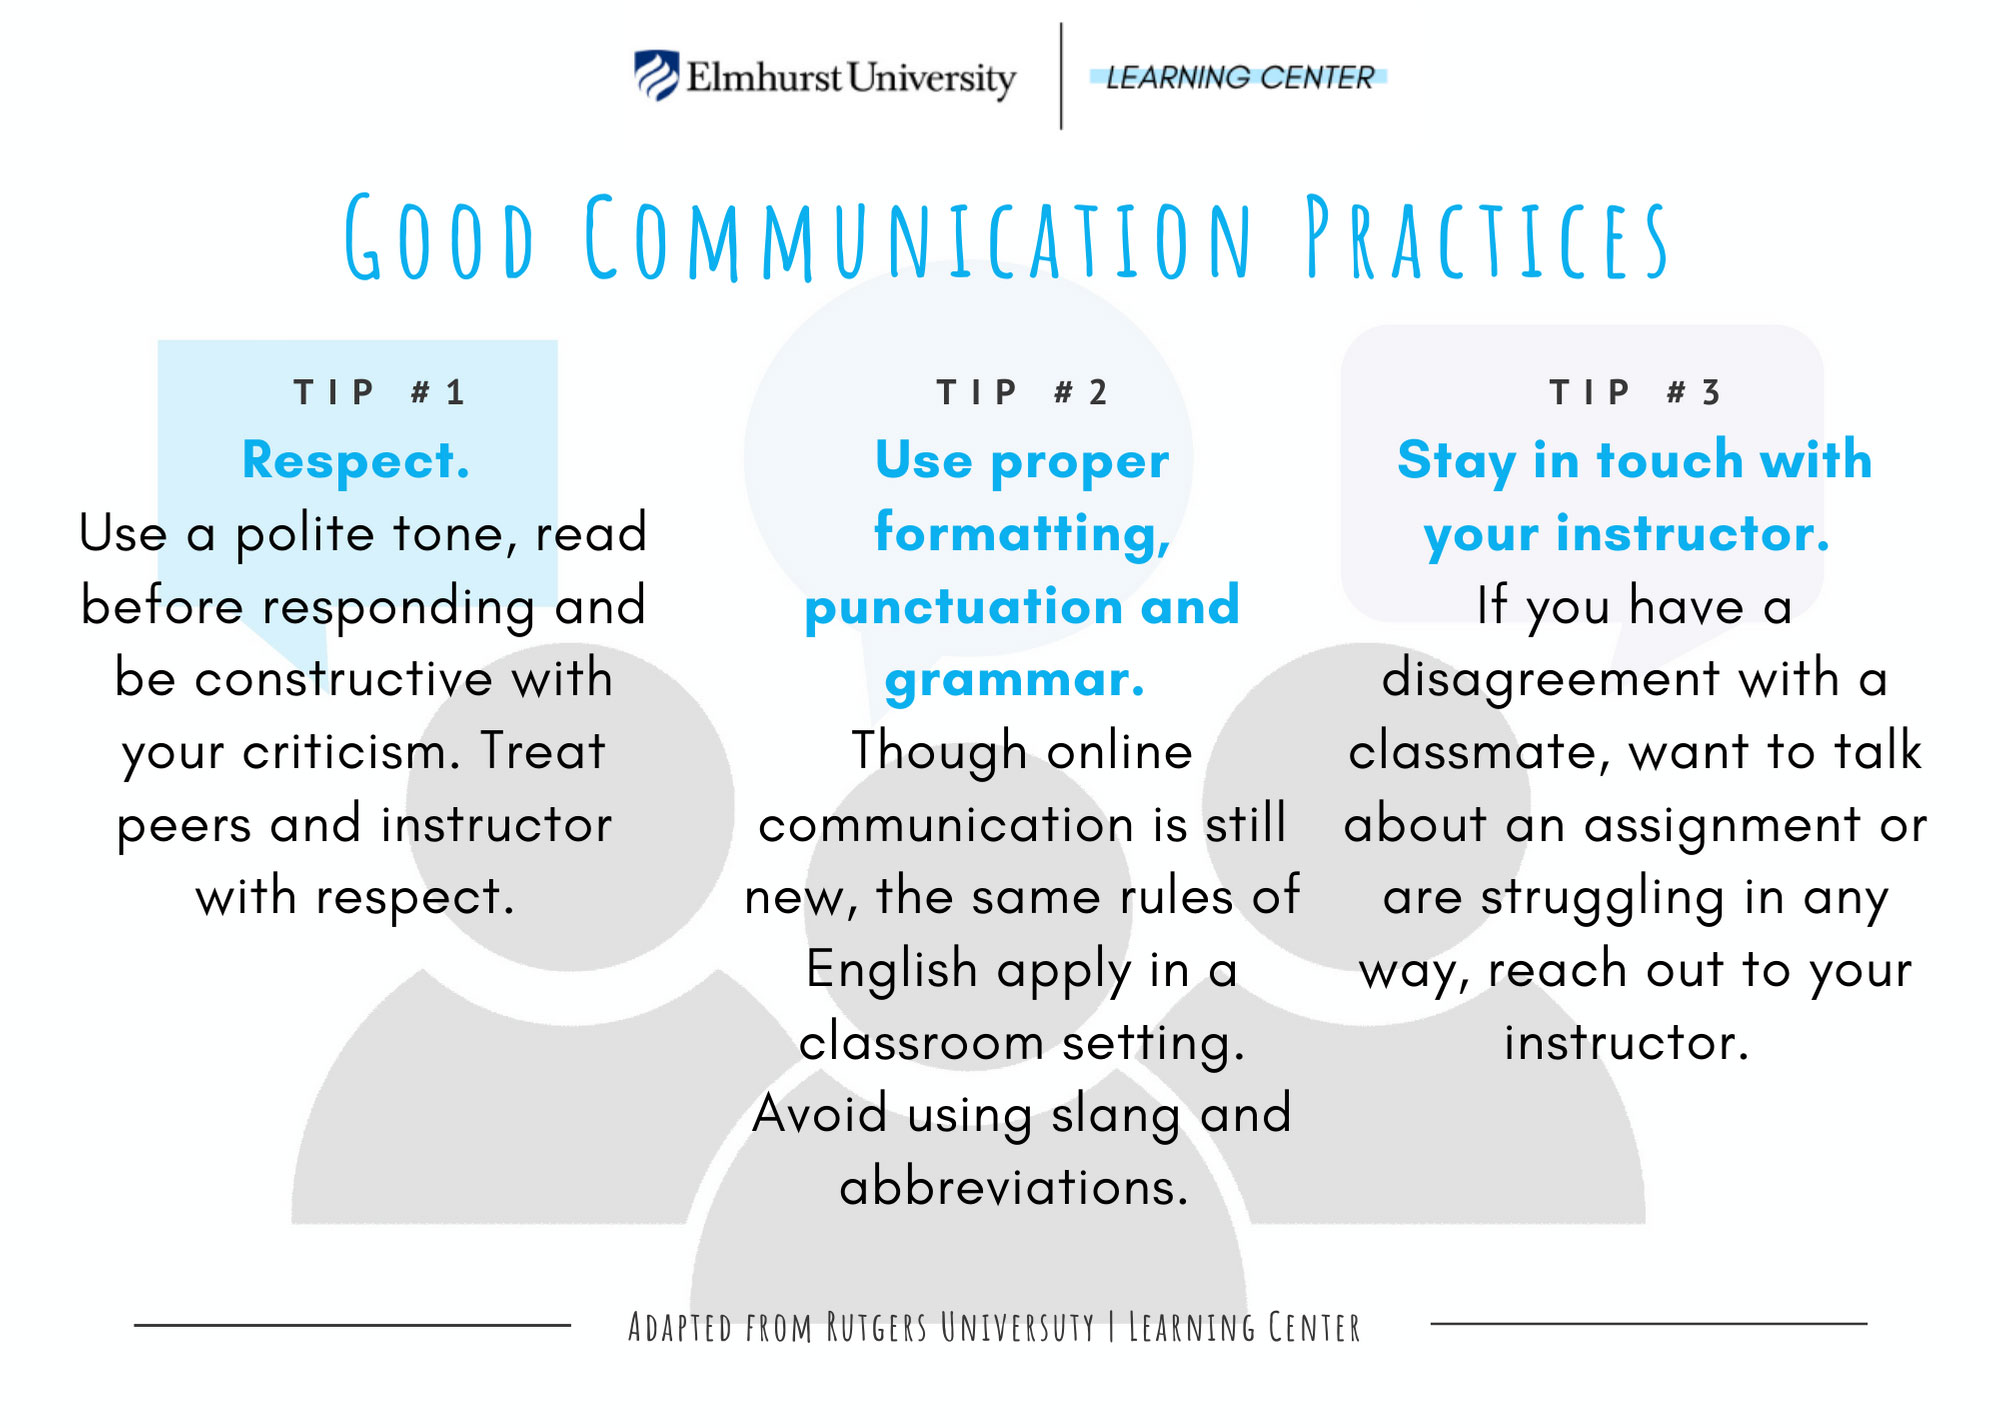 A graphic that lists best practices for communication. Tip 1: Show respect. Tip 2: Use proper formatting and grammar. Tip 3: Stay in touch with your instructor.